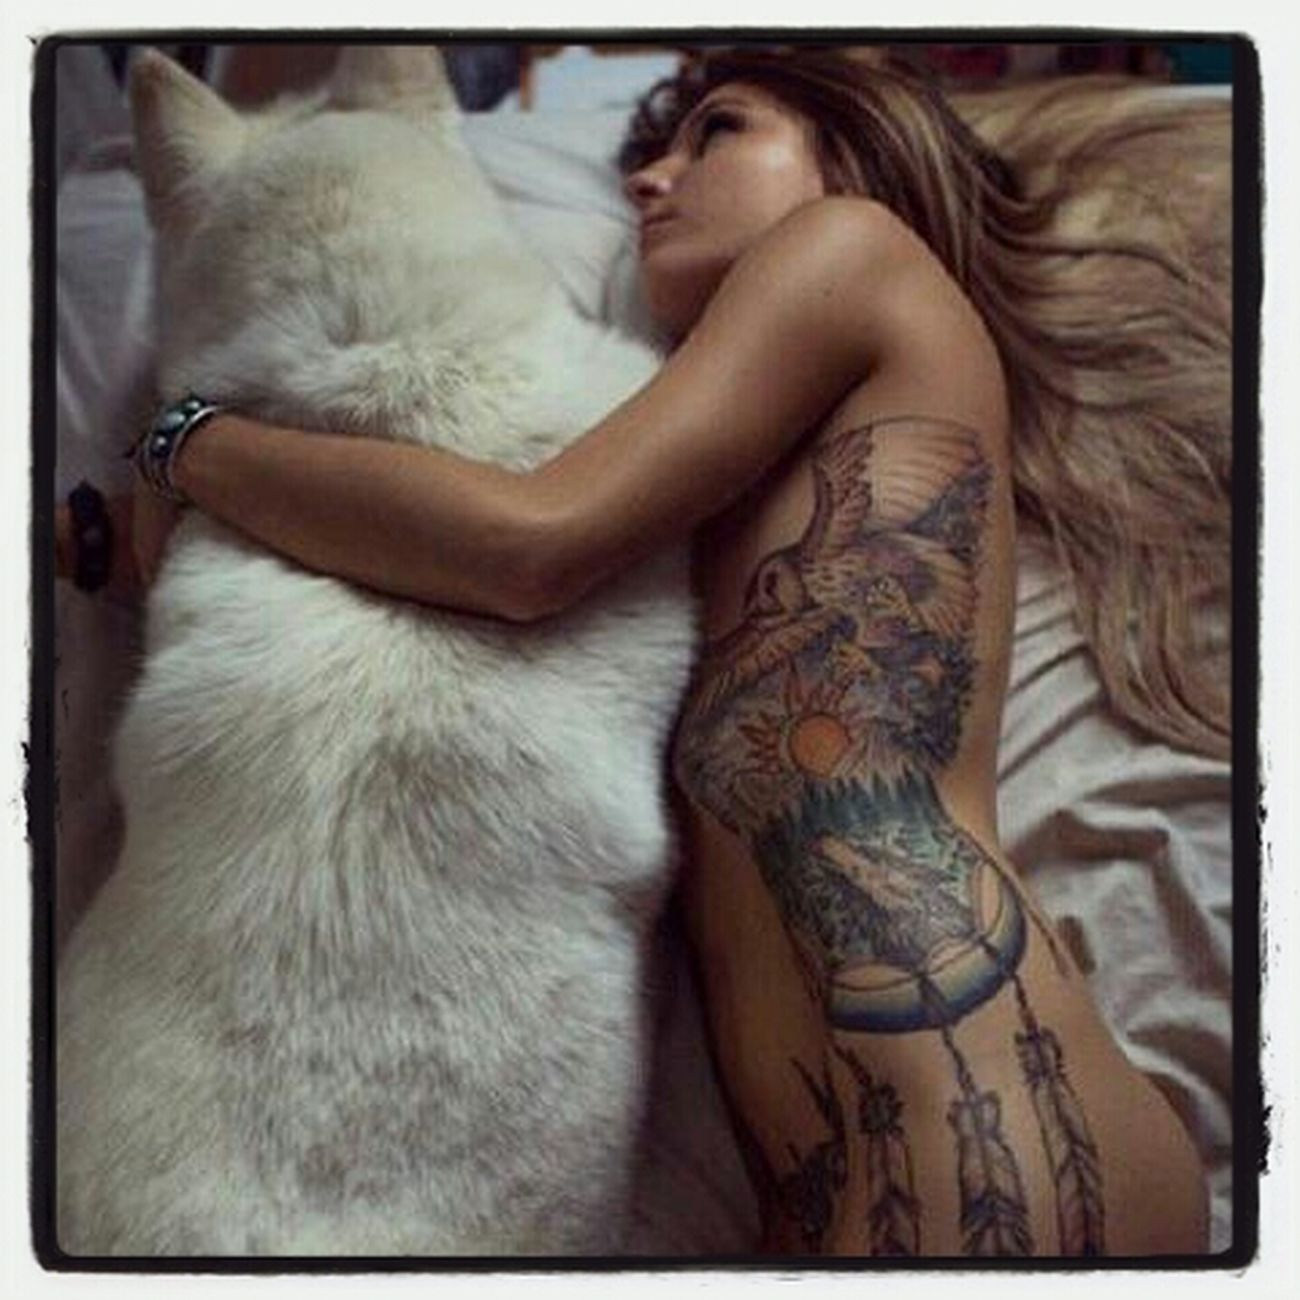 Relaxing Tattoo ❤ Life *-*